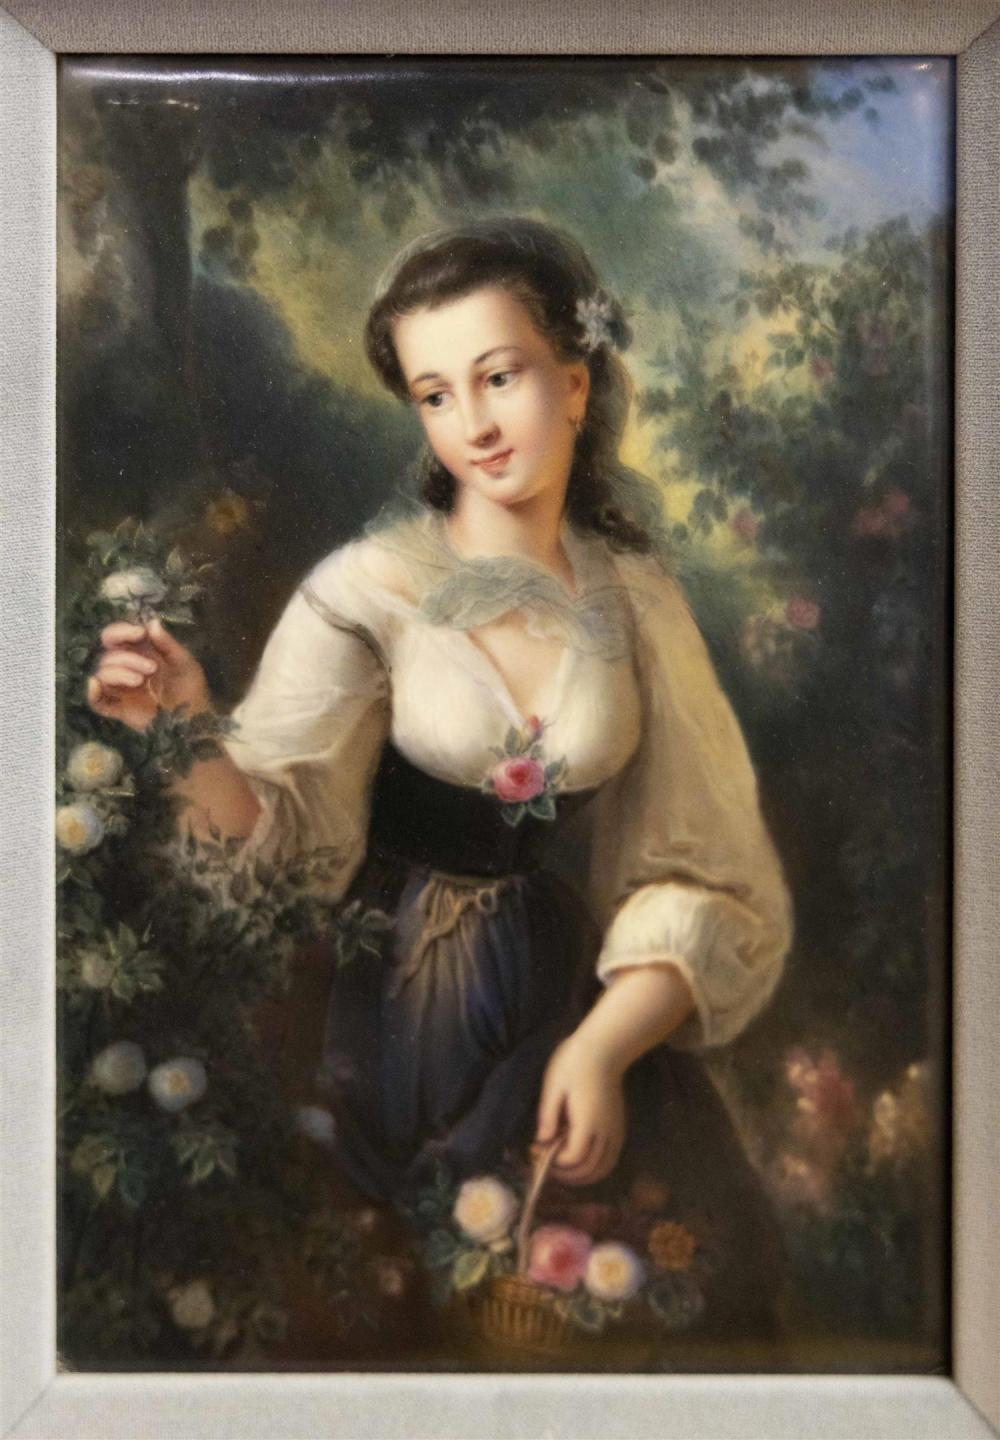 KPM PORCELAIN PLAQUE Depicts a young woman picking roses in a garden. Signed illegibly lower right. Inscribed verso